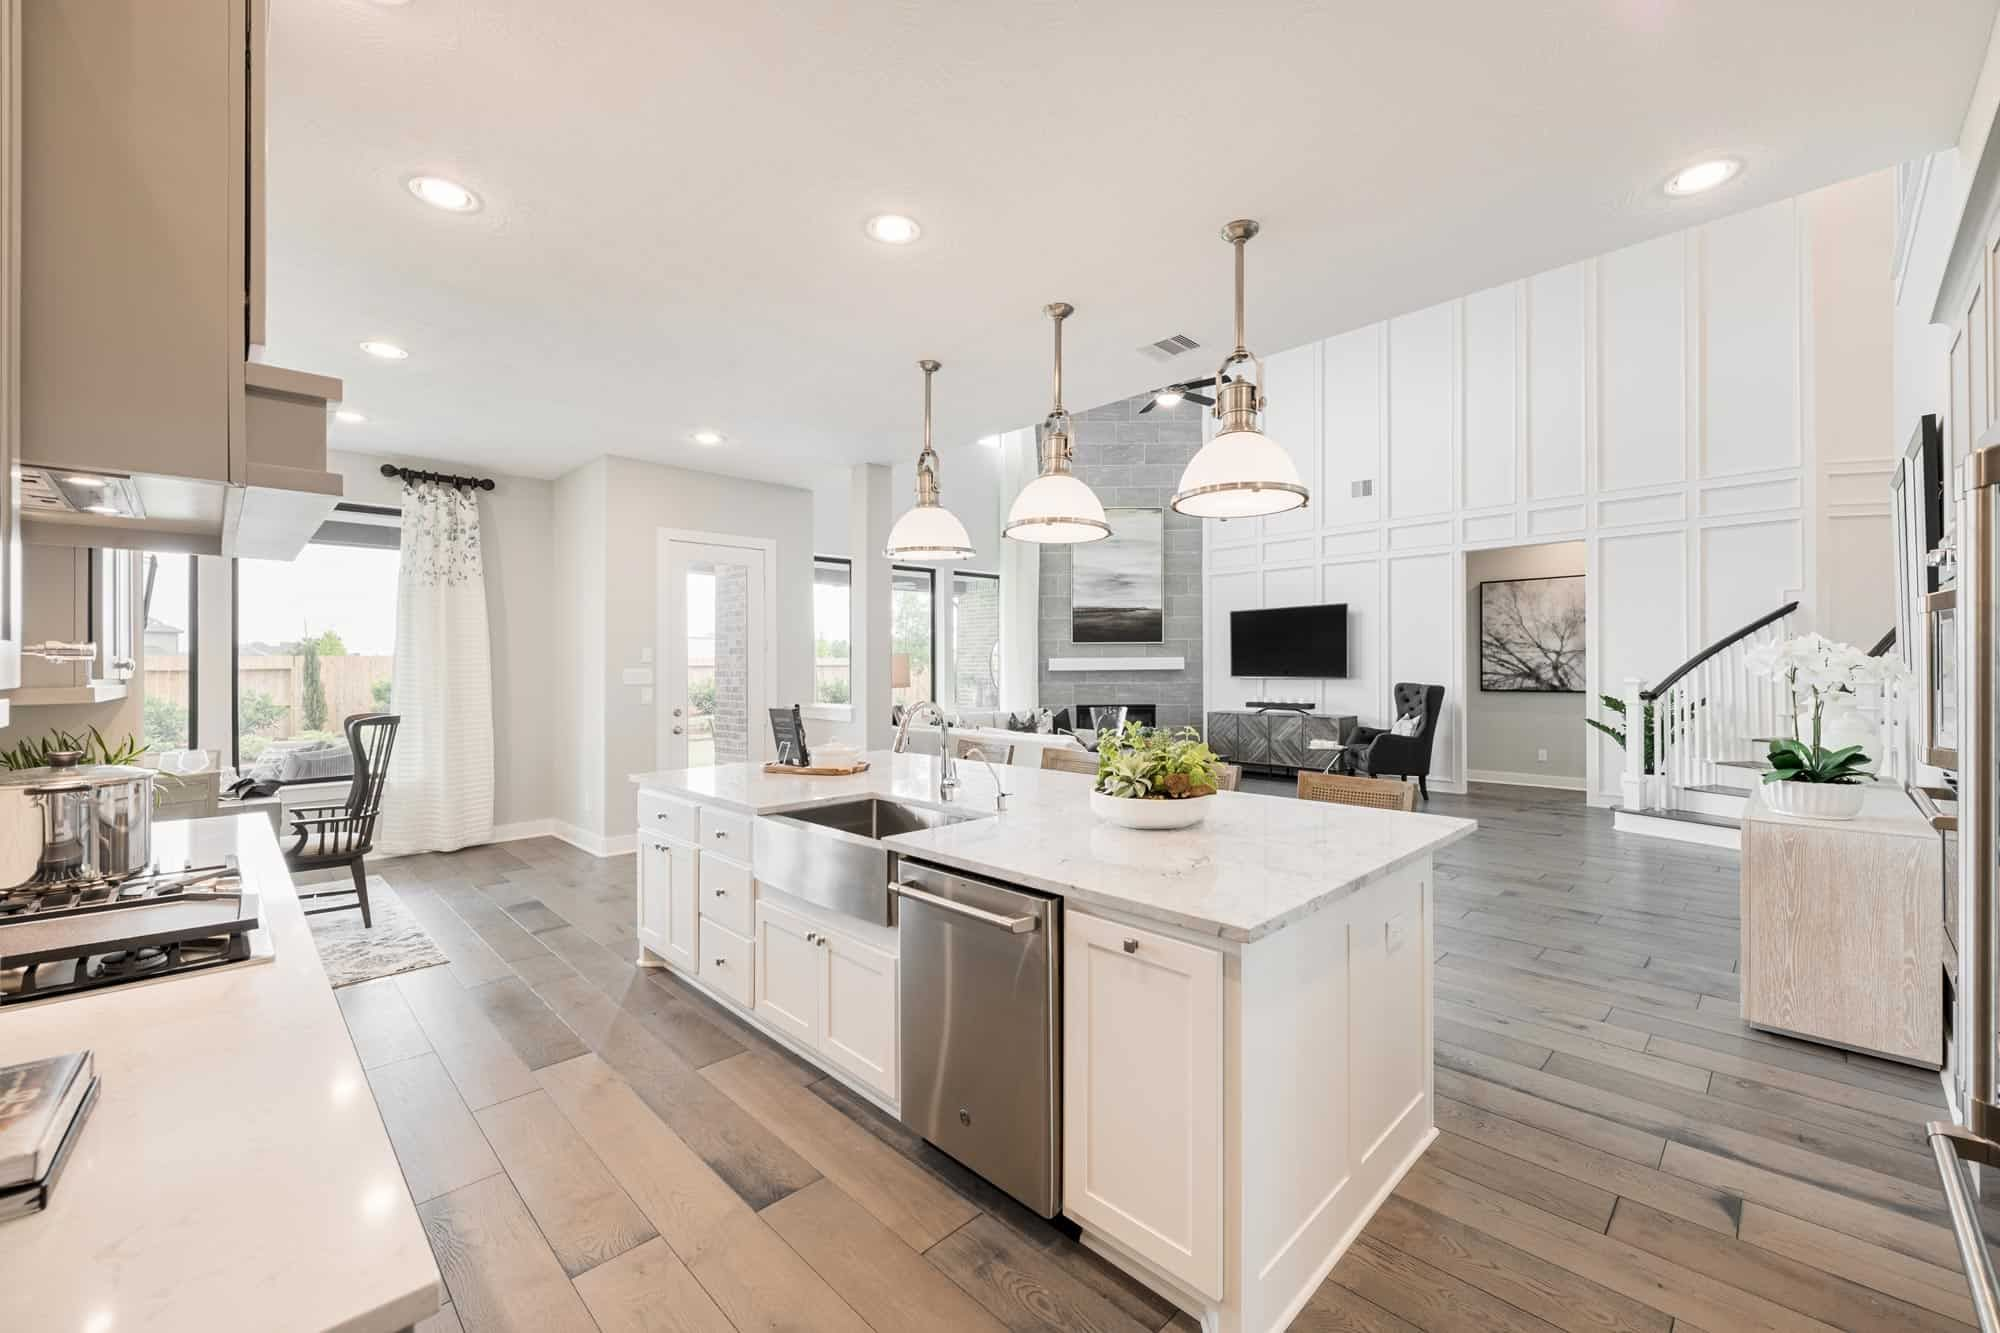 Kitchen featured in the Snyder By Tri Pointe Homes in Houston, TX